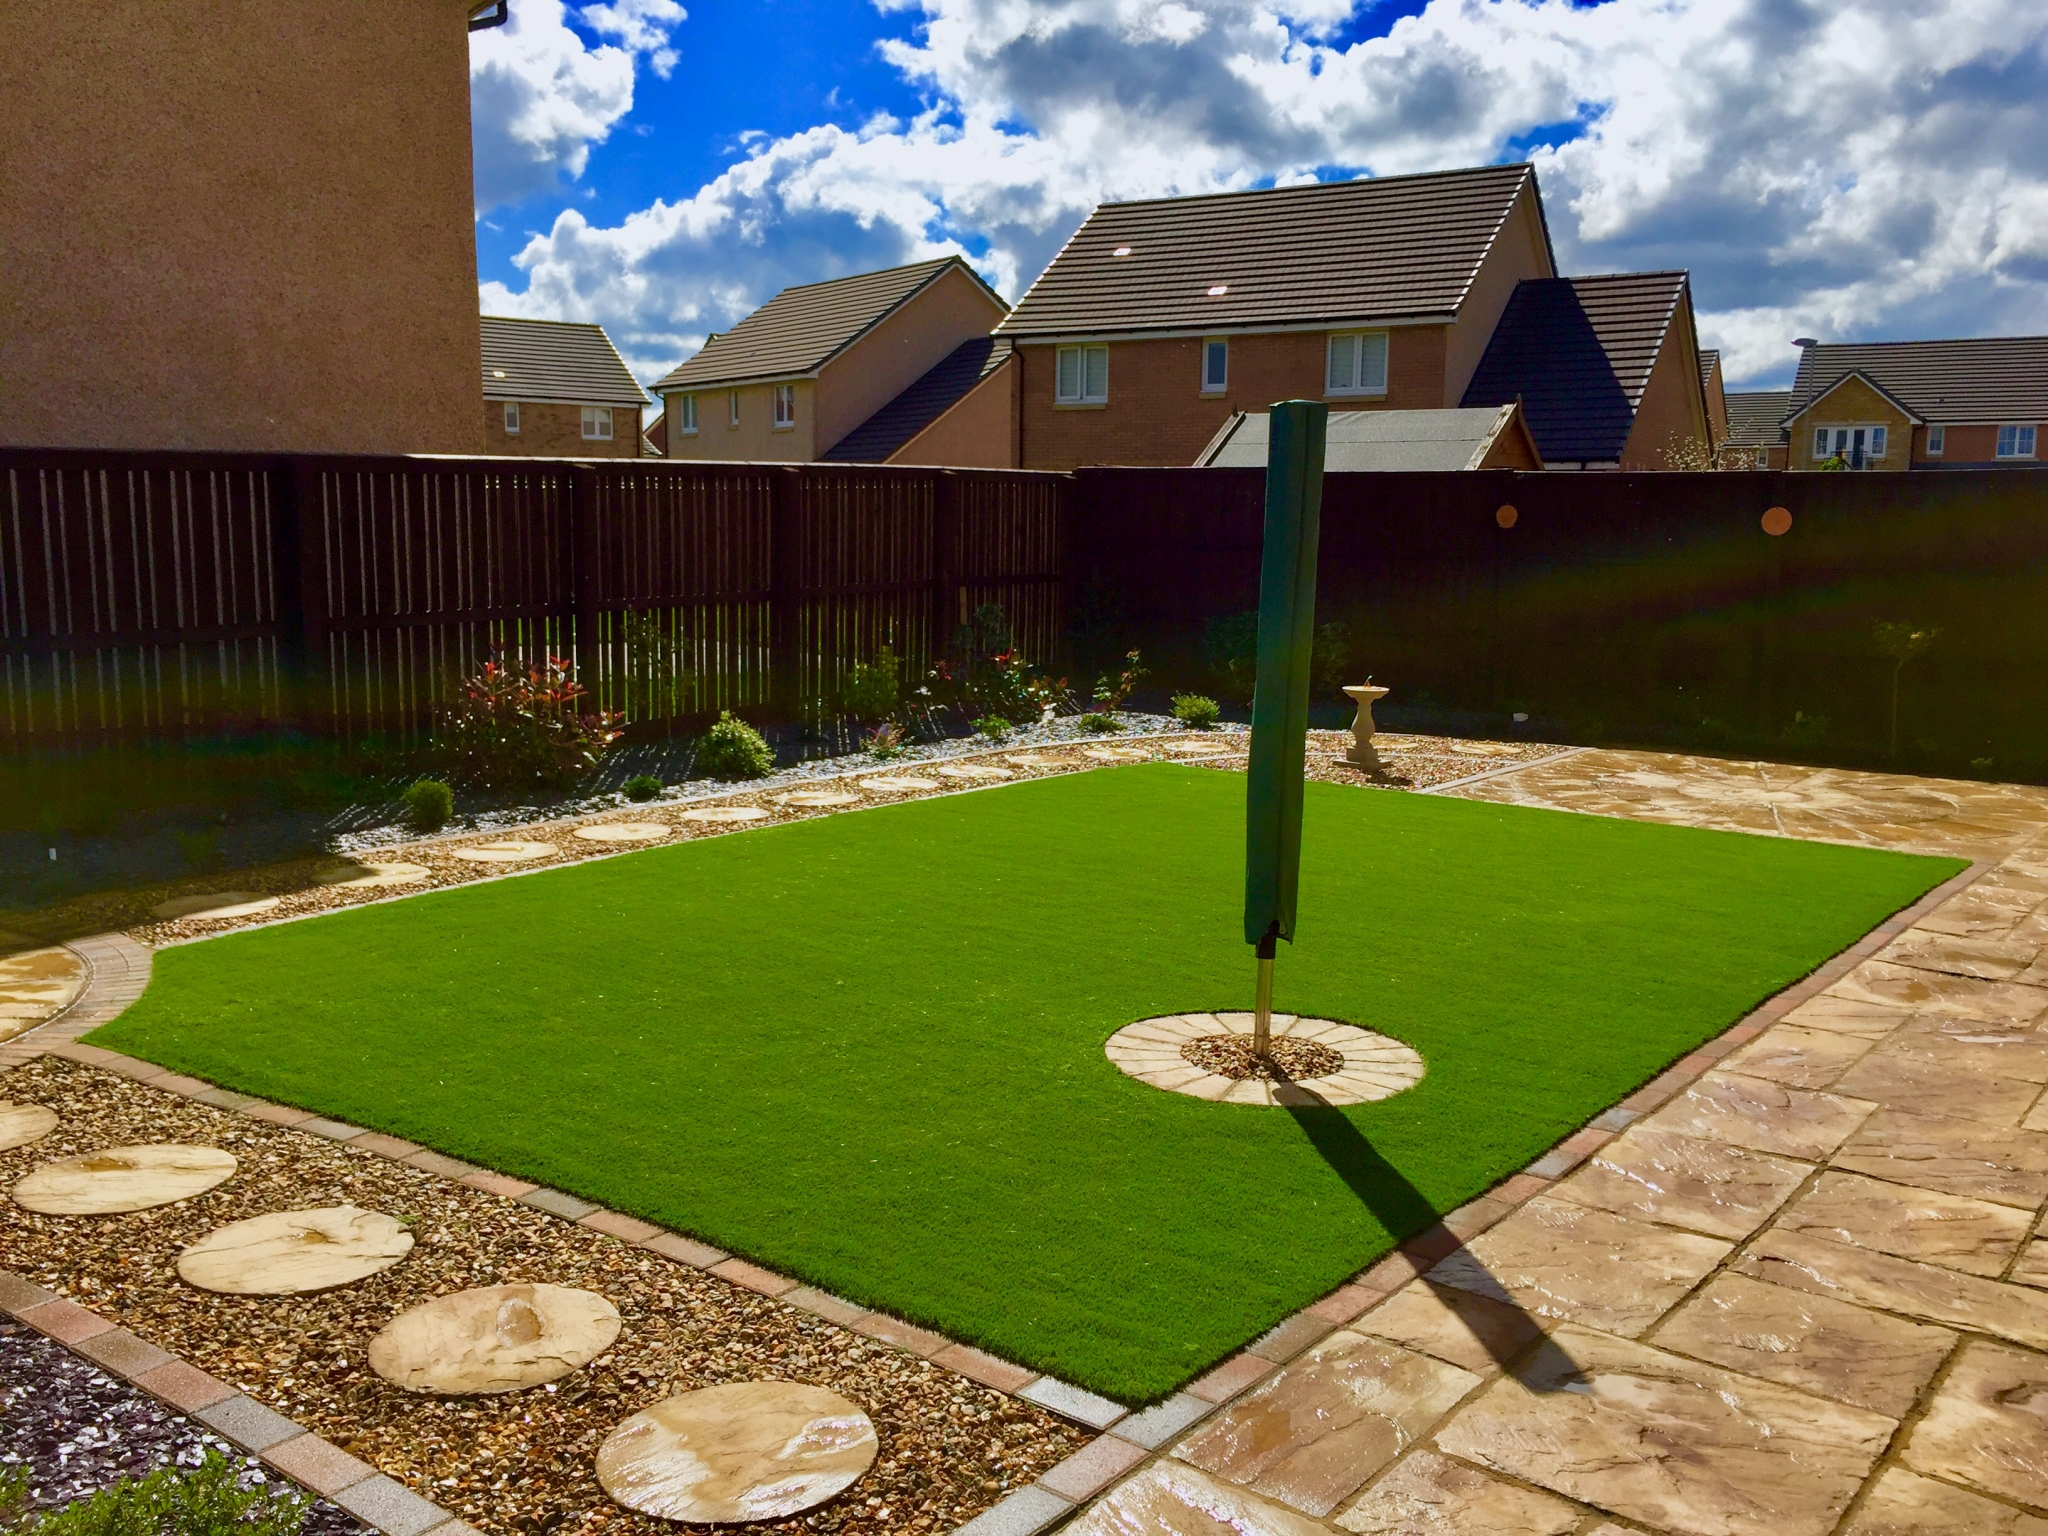 Artificial grass Installation Scotland by The Artificial Lawn Company, Livingston, West Lothian.